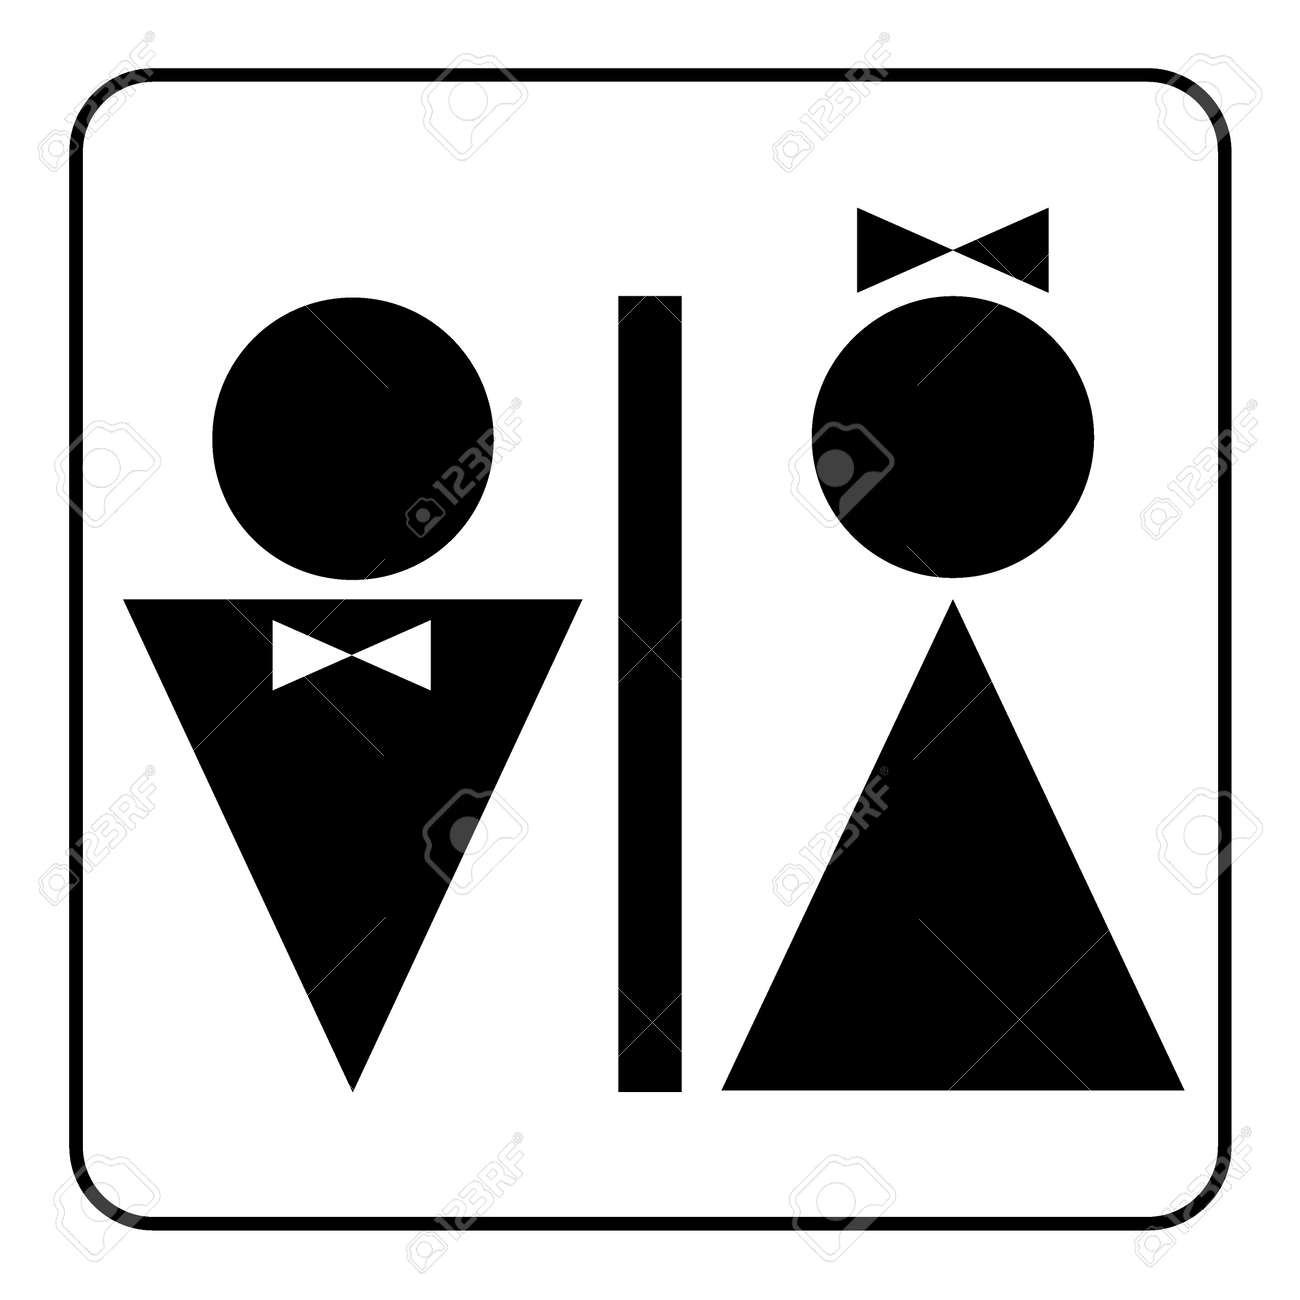 Restroom sign  Male and female toilet icon denoting restroom facilities for  both men and women. Restroom Sign  Male And Female Toilet Icon Denoting Restroom